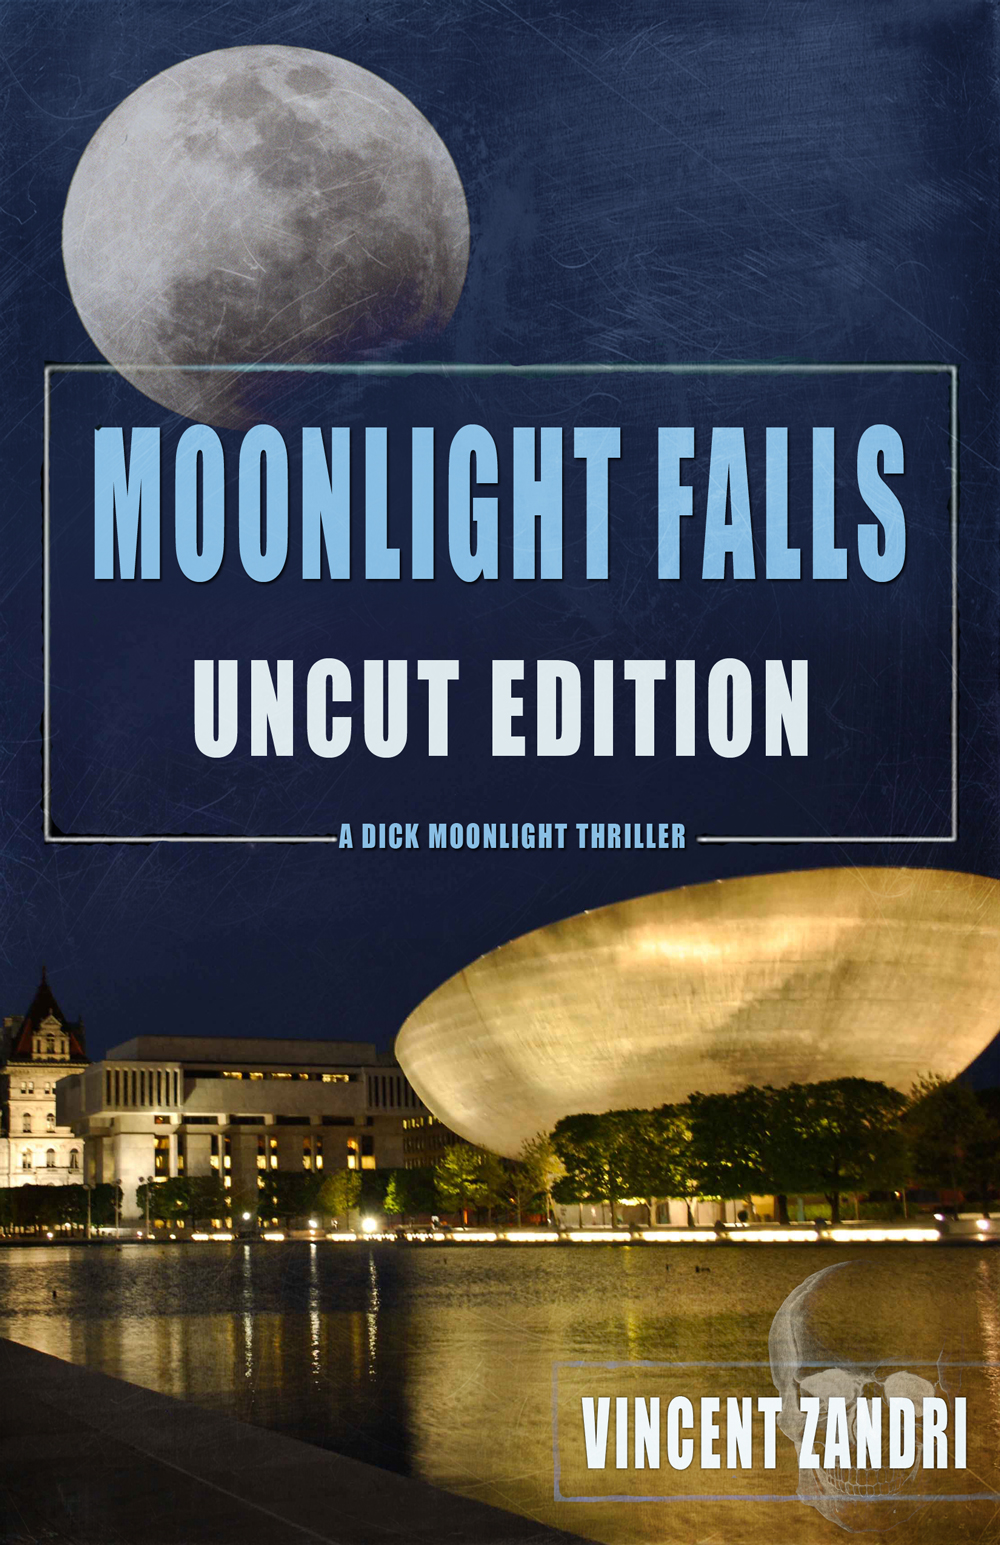 Vincent Zandri - Moonlight Falls (for fans of James Patterson, Stephen King and Lee Child)